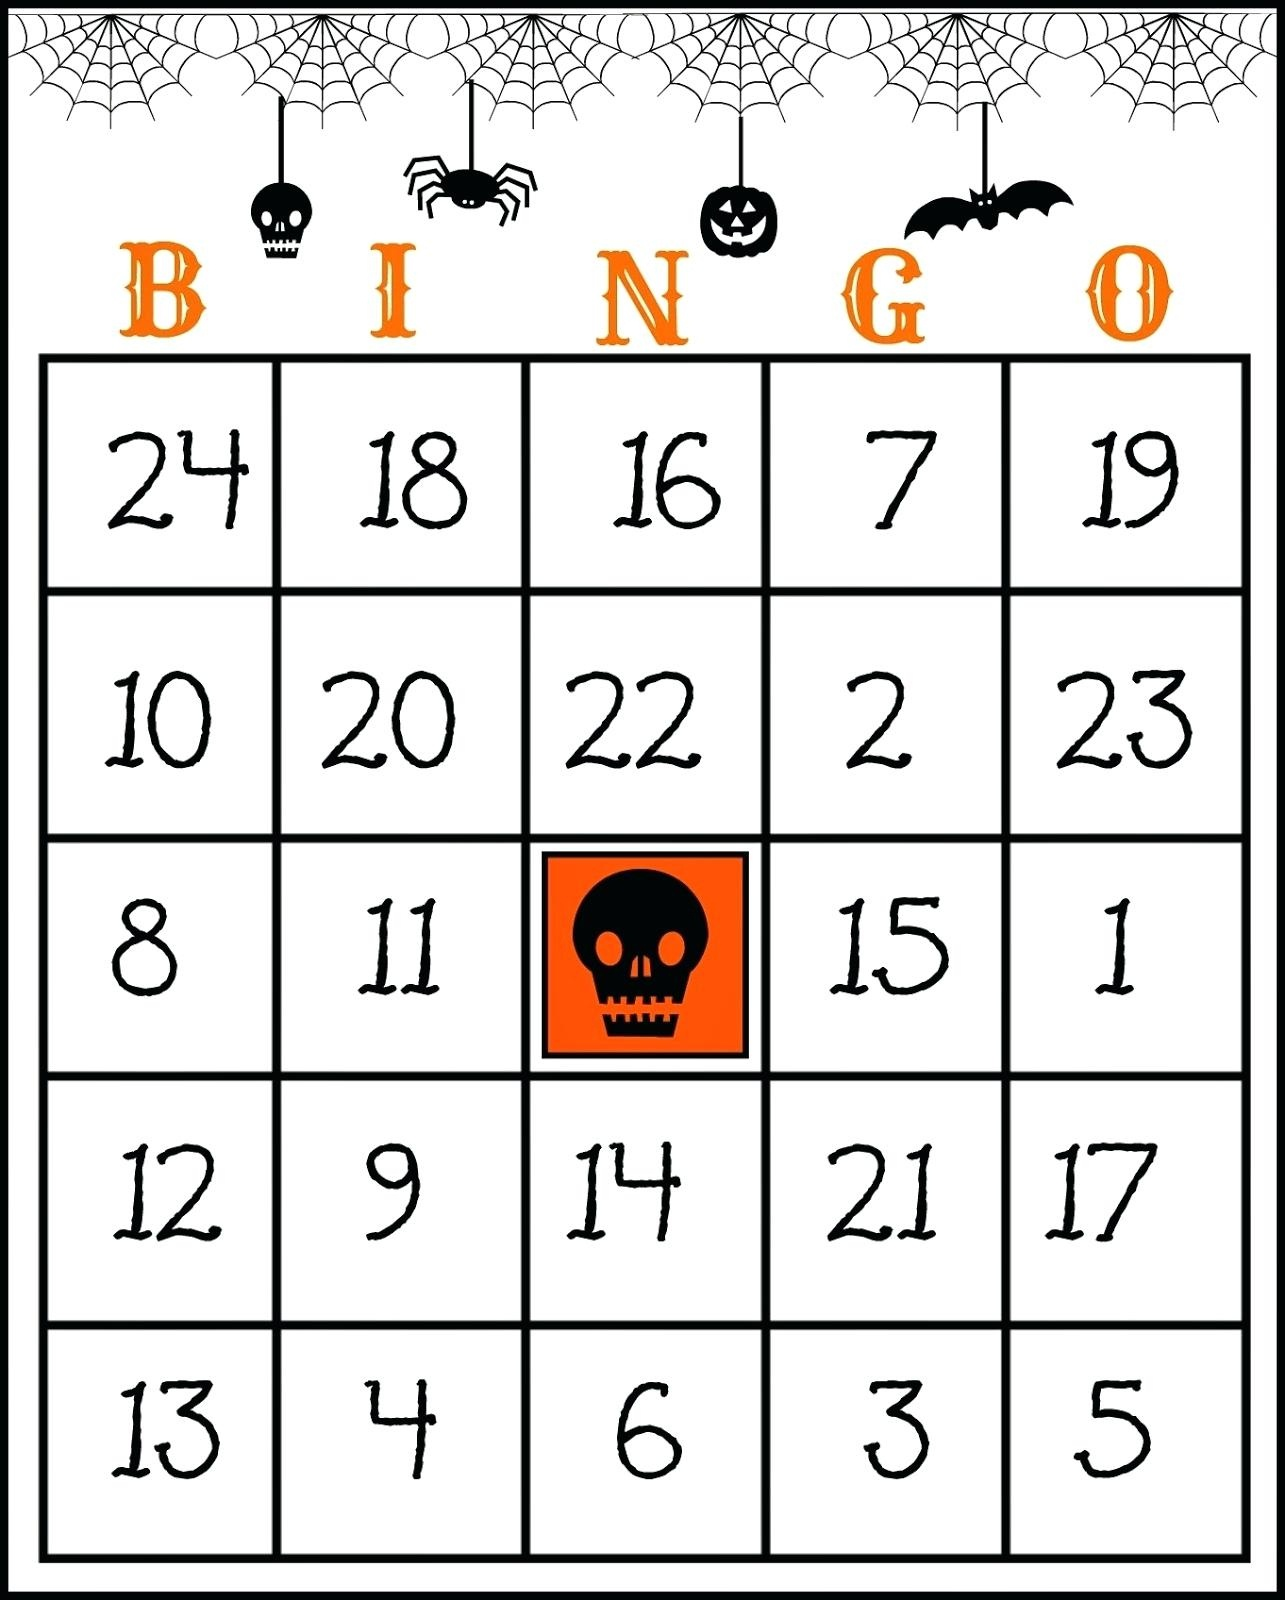 Maths Bingo Free Multiplication Games For Kids Printable Times - Free Printable Multiplication Bingo